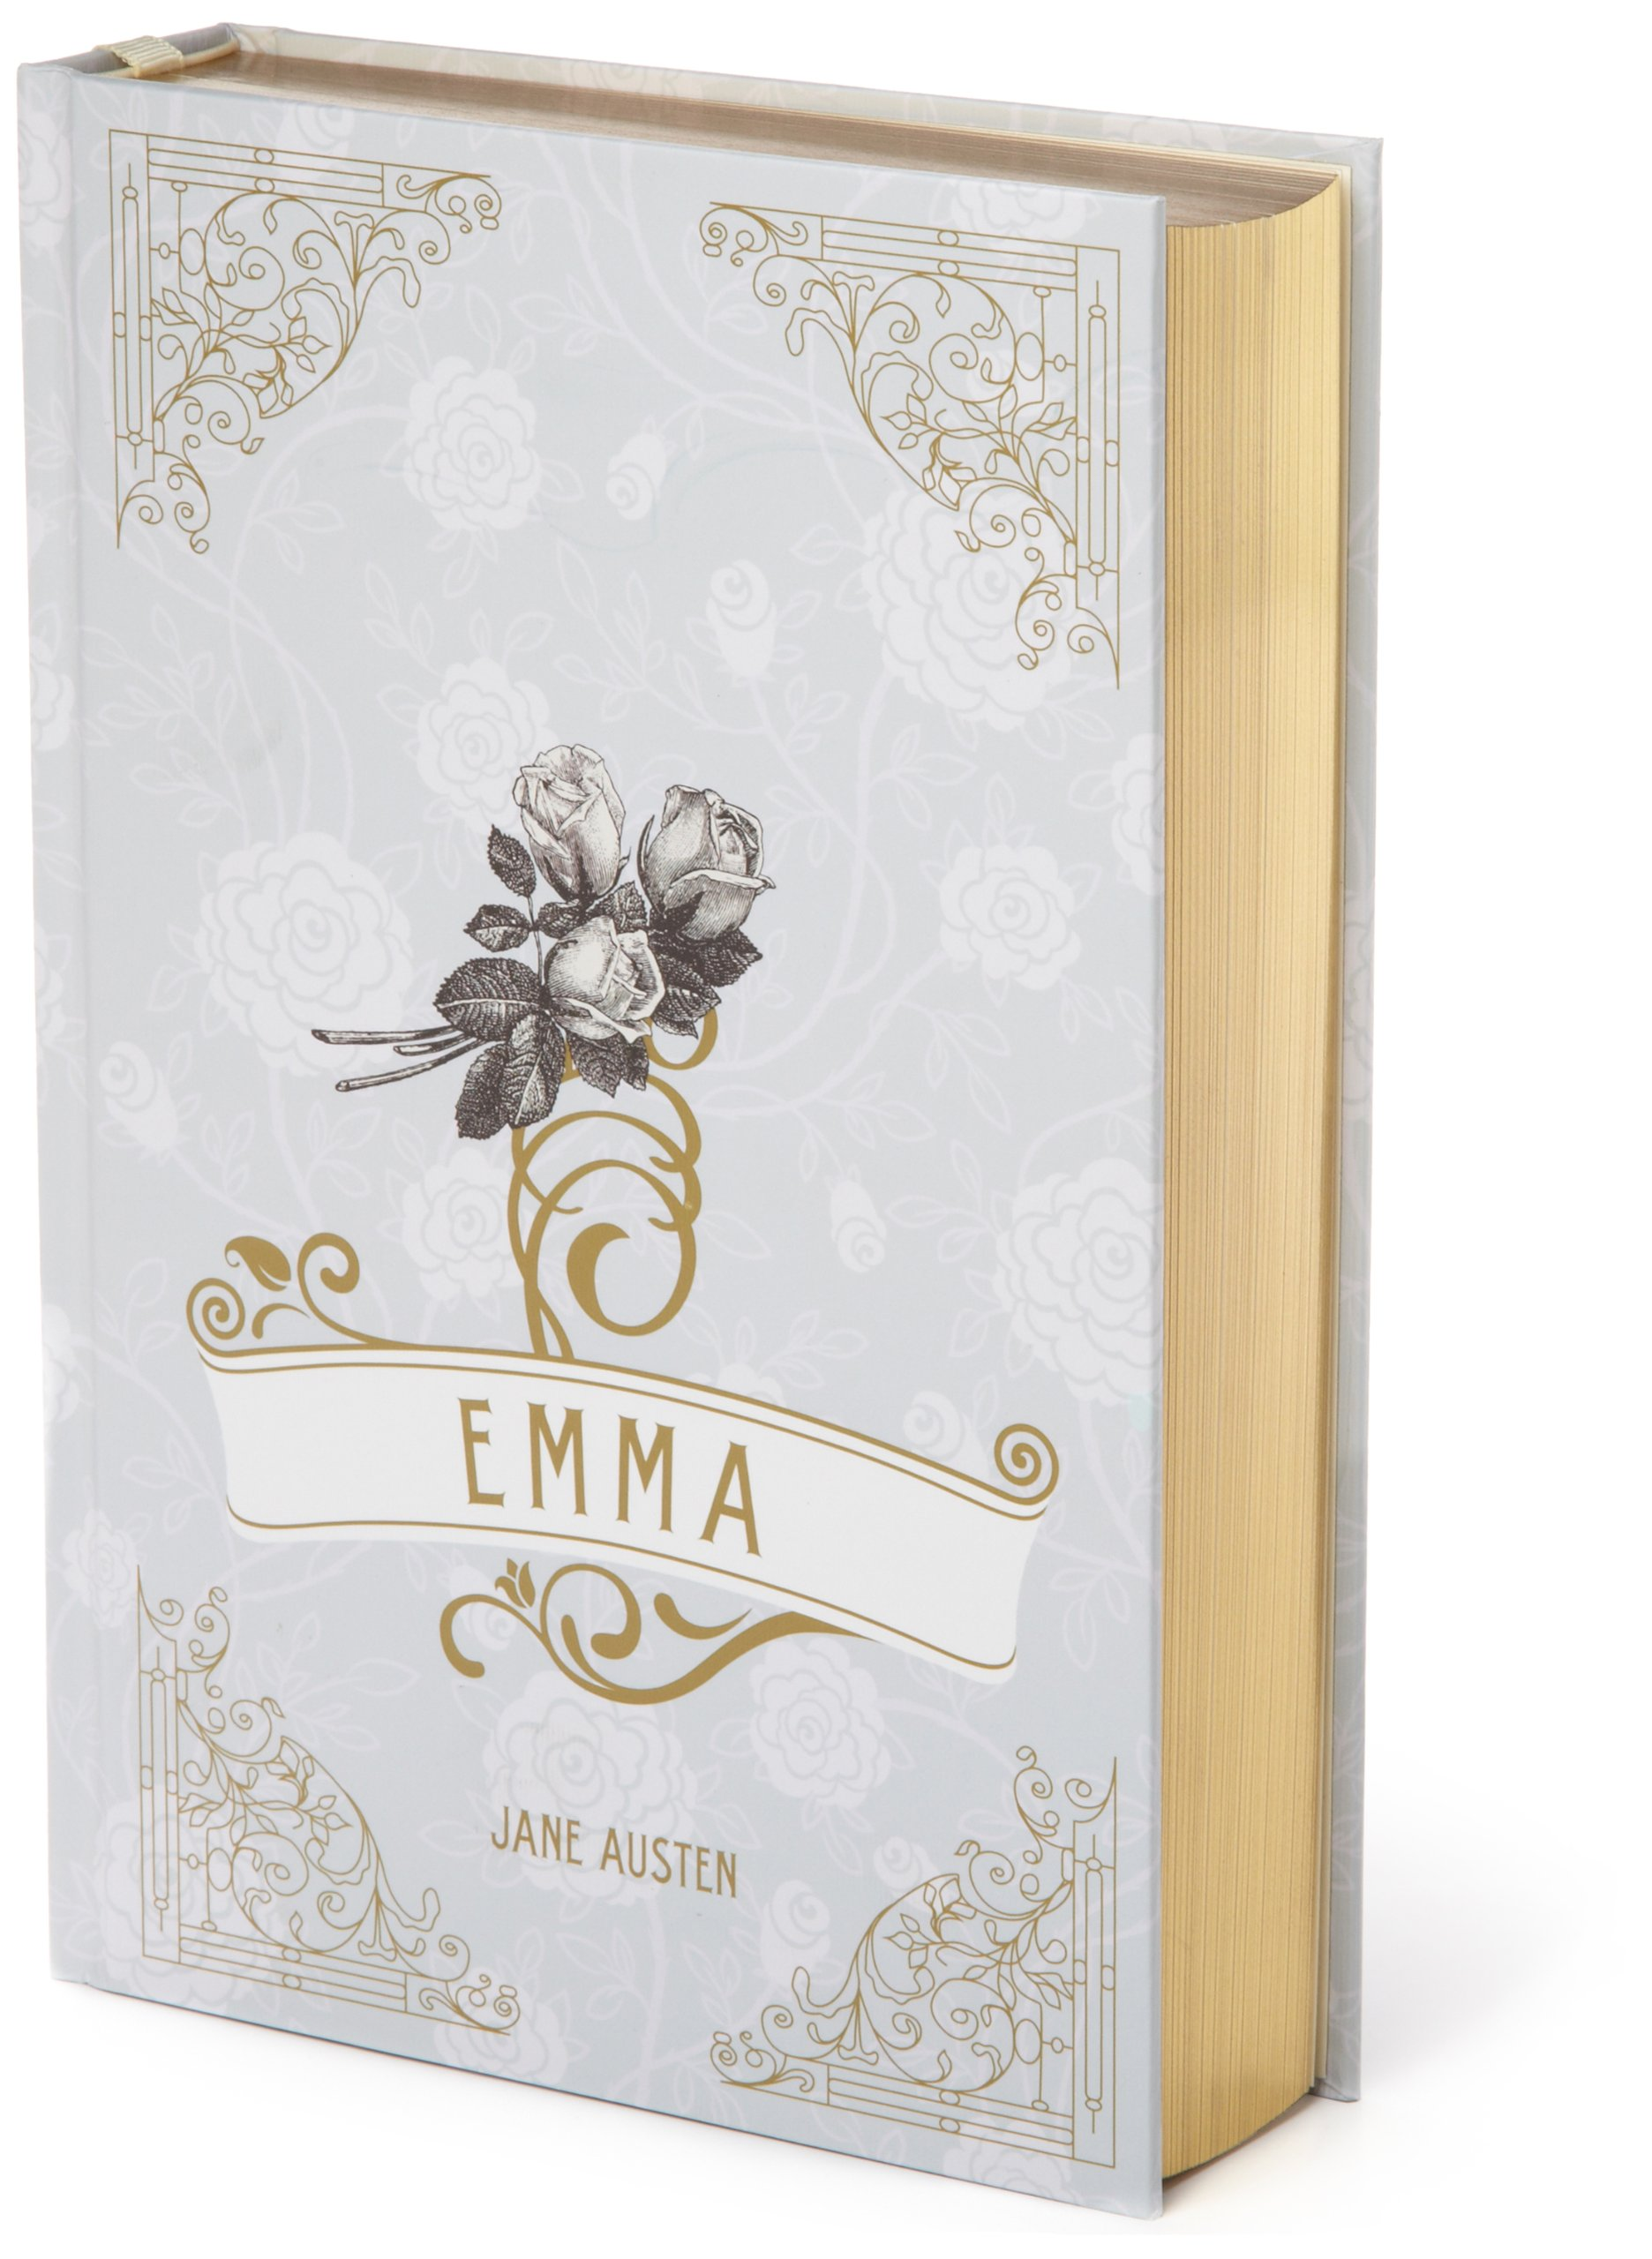 Emma by Jane Austen - GCSE English - Marked by Teachers.com